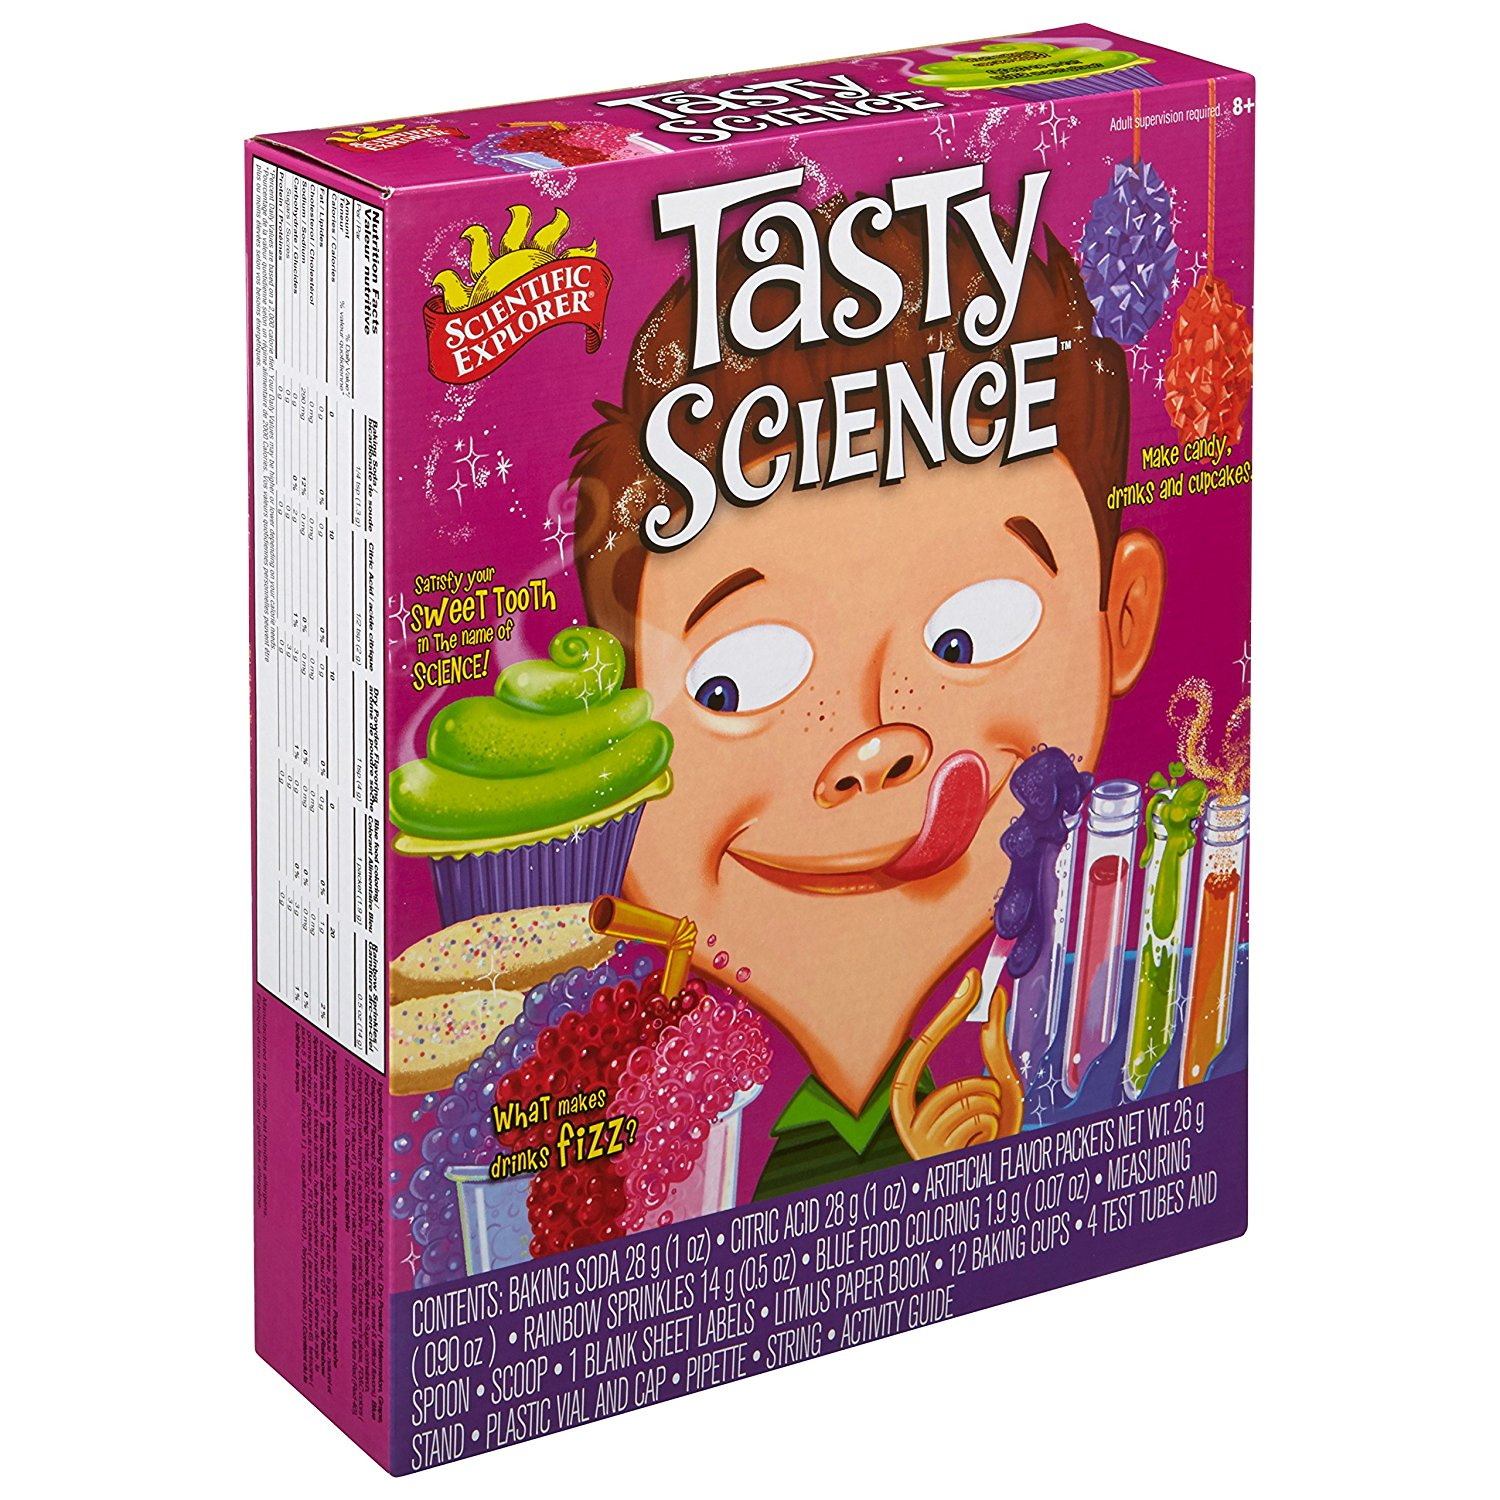 Tasty Science Kit, Tasty Science is packed with ingredients, recipes, activity cards, a test tube laboratory, and lots more to explore the science of taste By Scientific Explorer